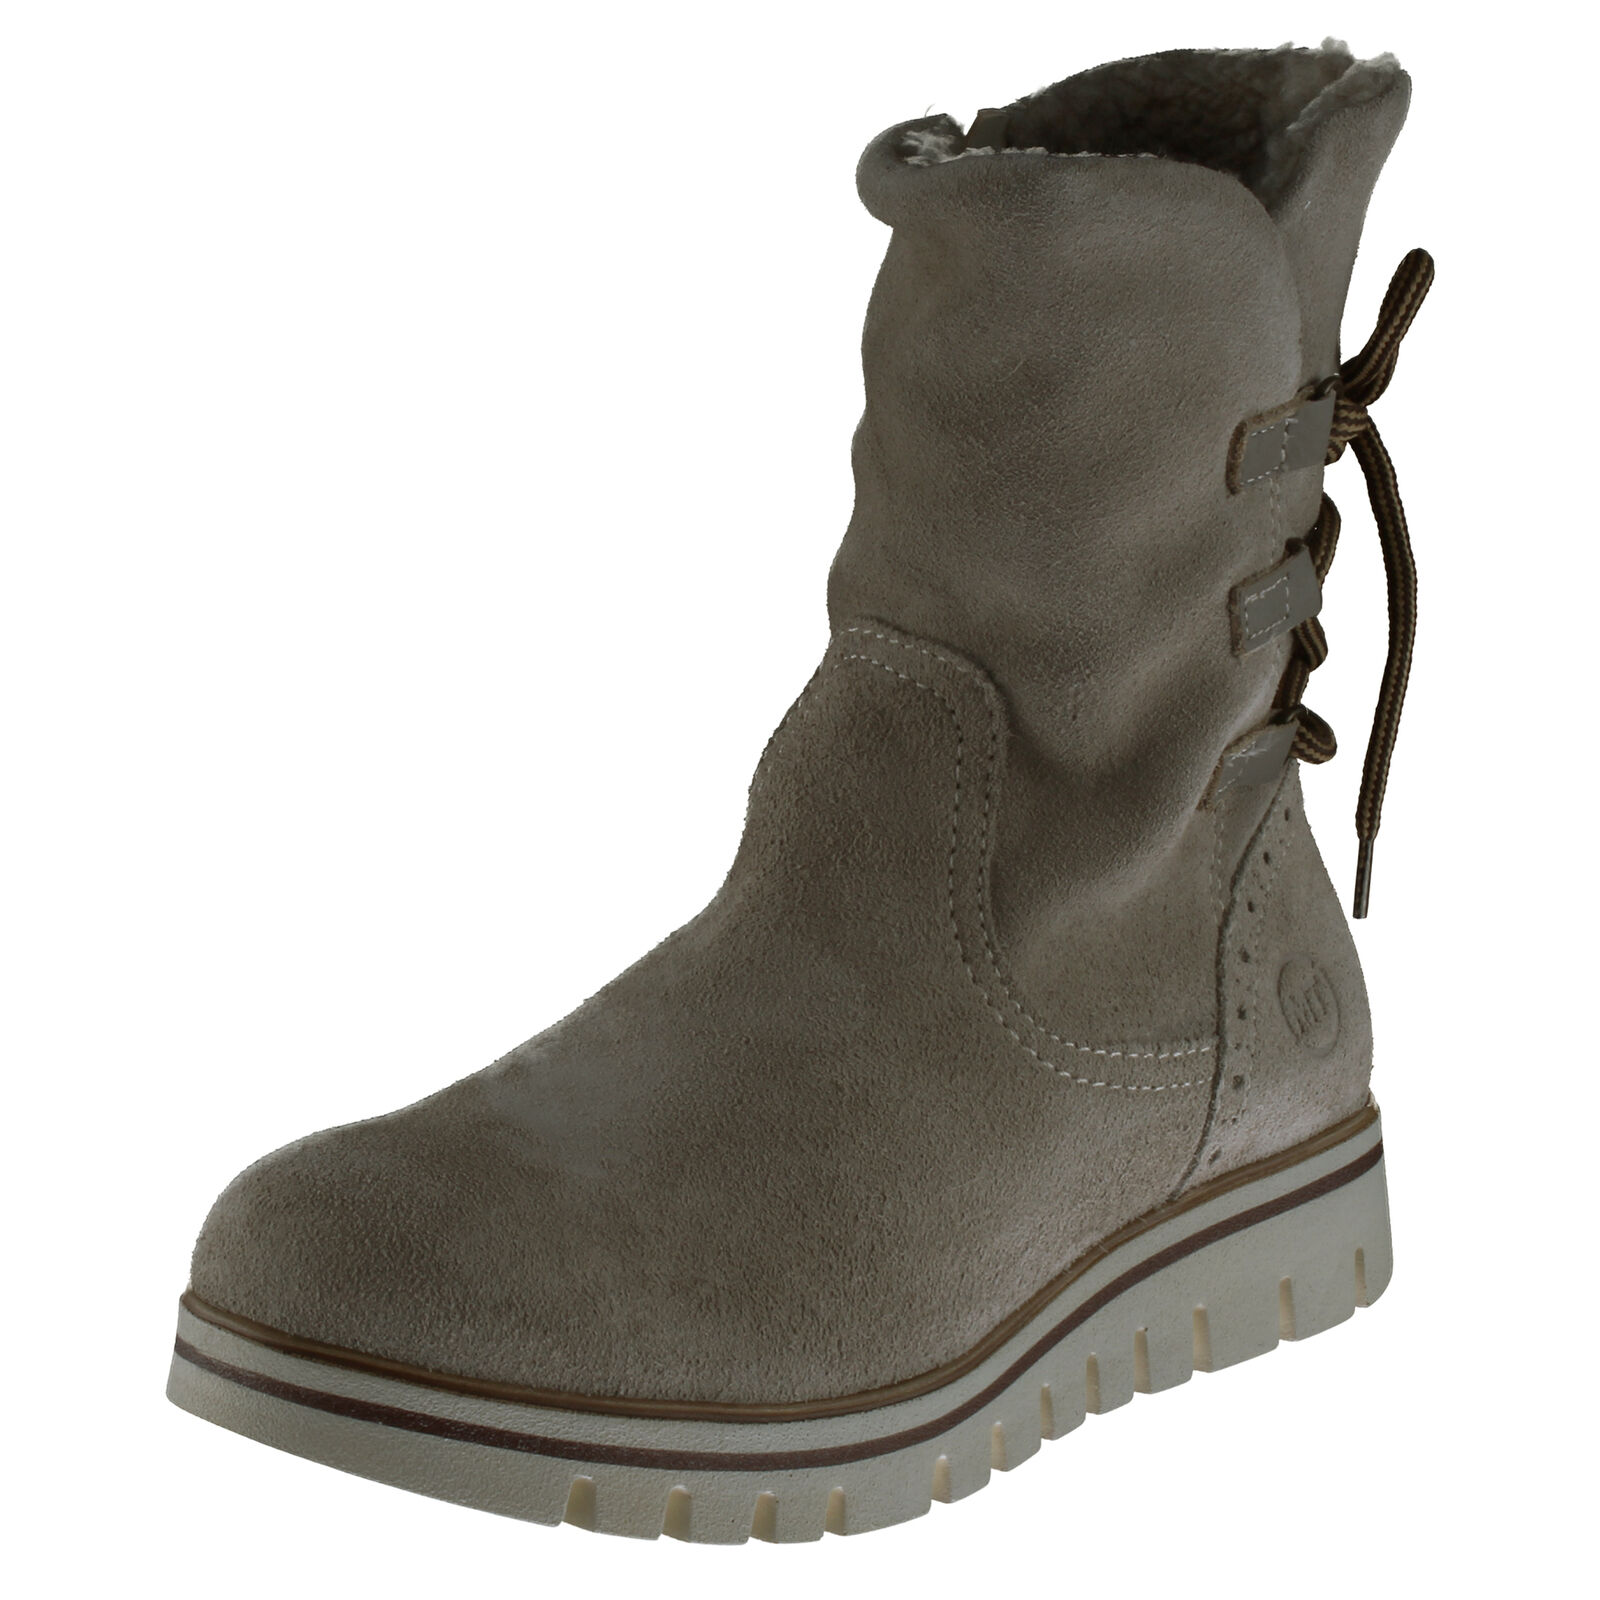 Marco Tozzi Stiefeletten - - - taupe 91a057